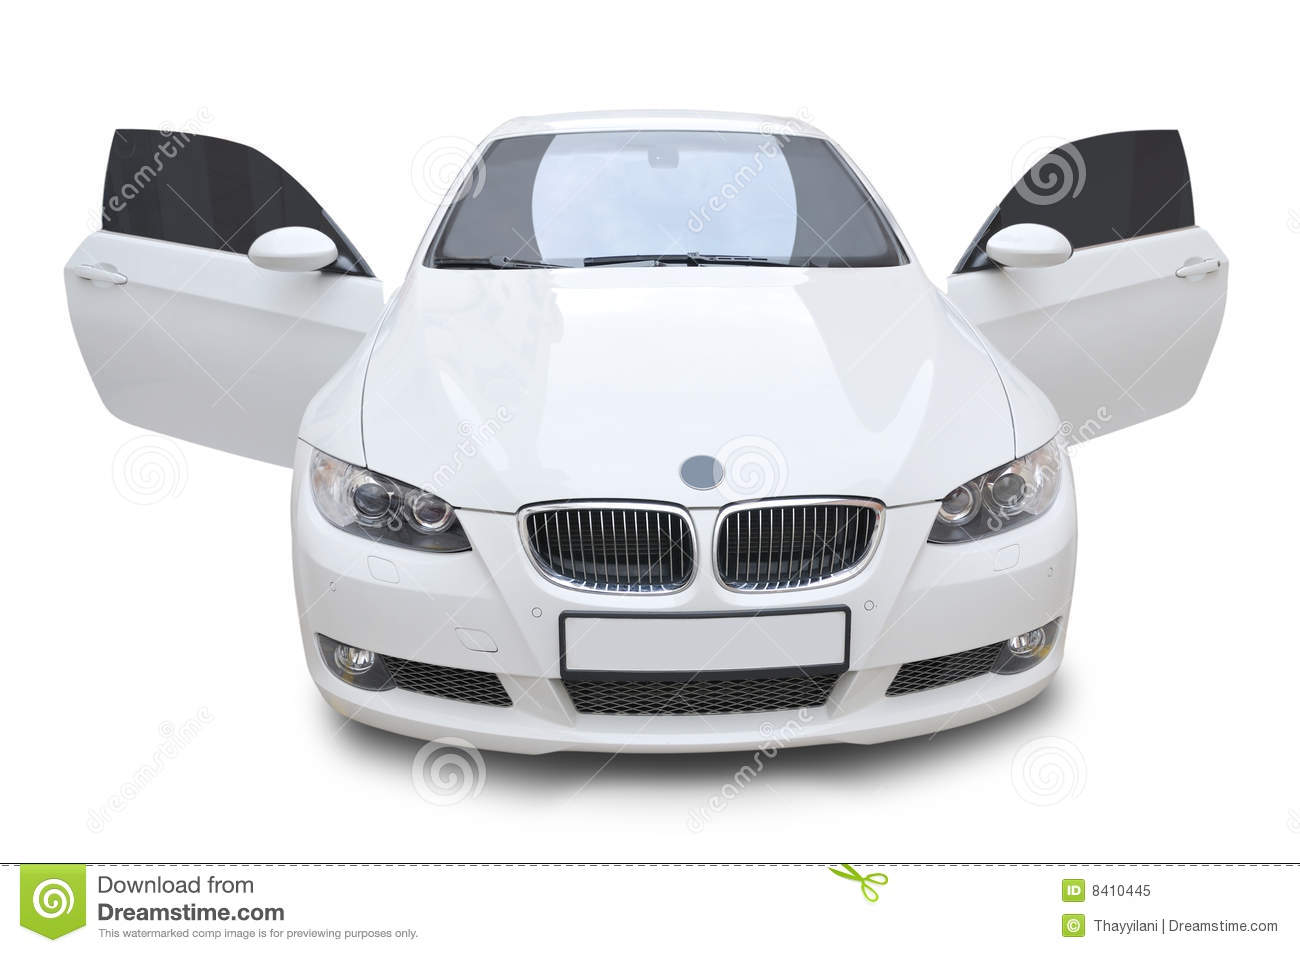 Bmw Car 335i Convertible Doors Open Royalty Free Stock